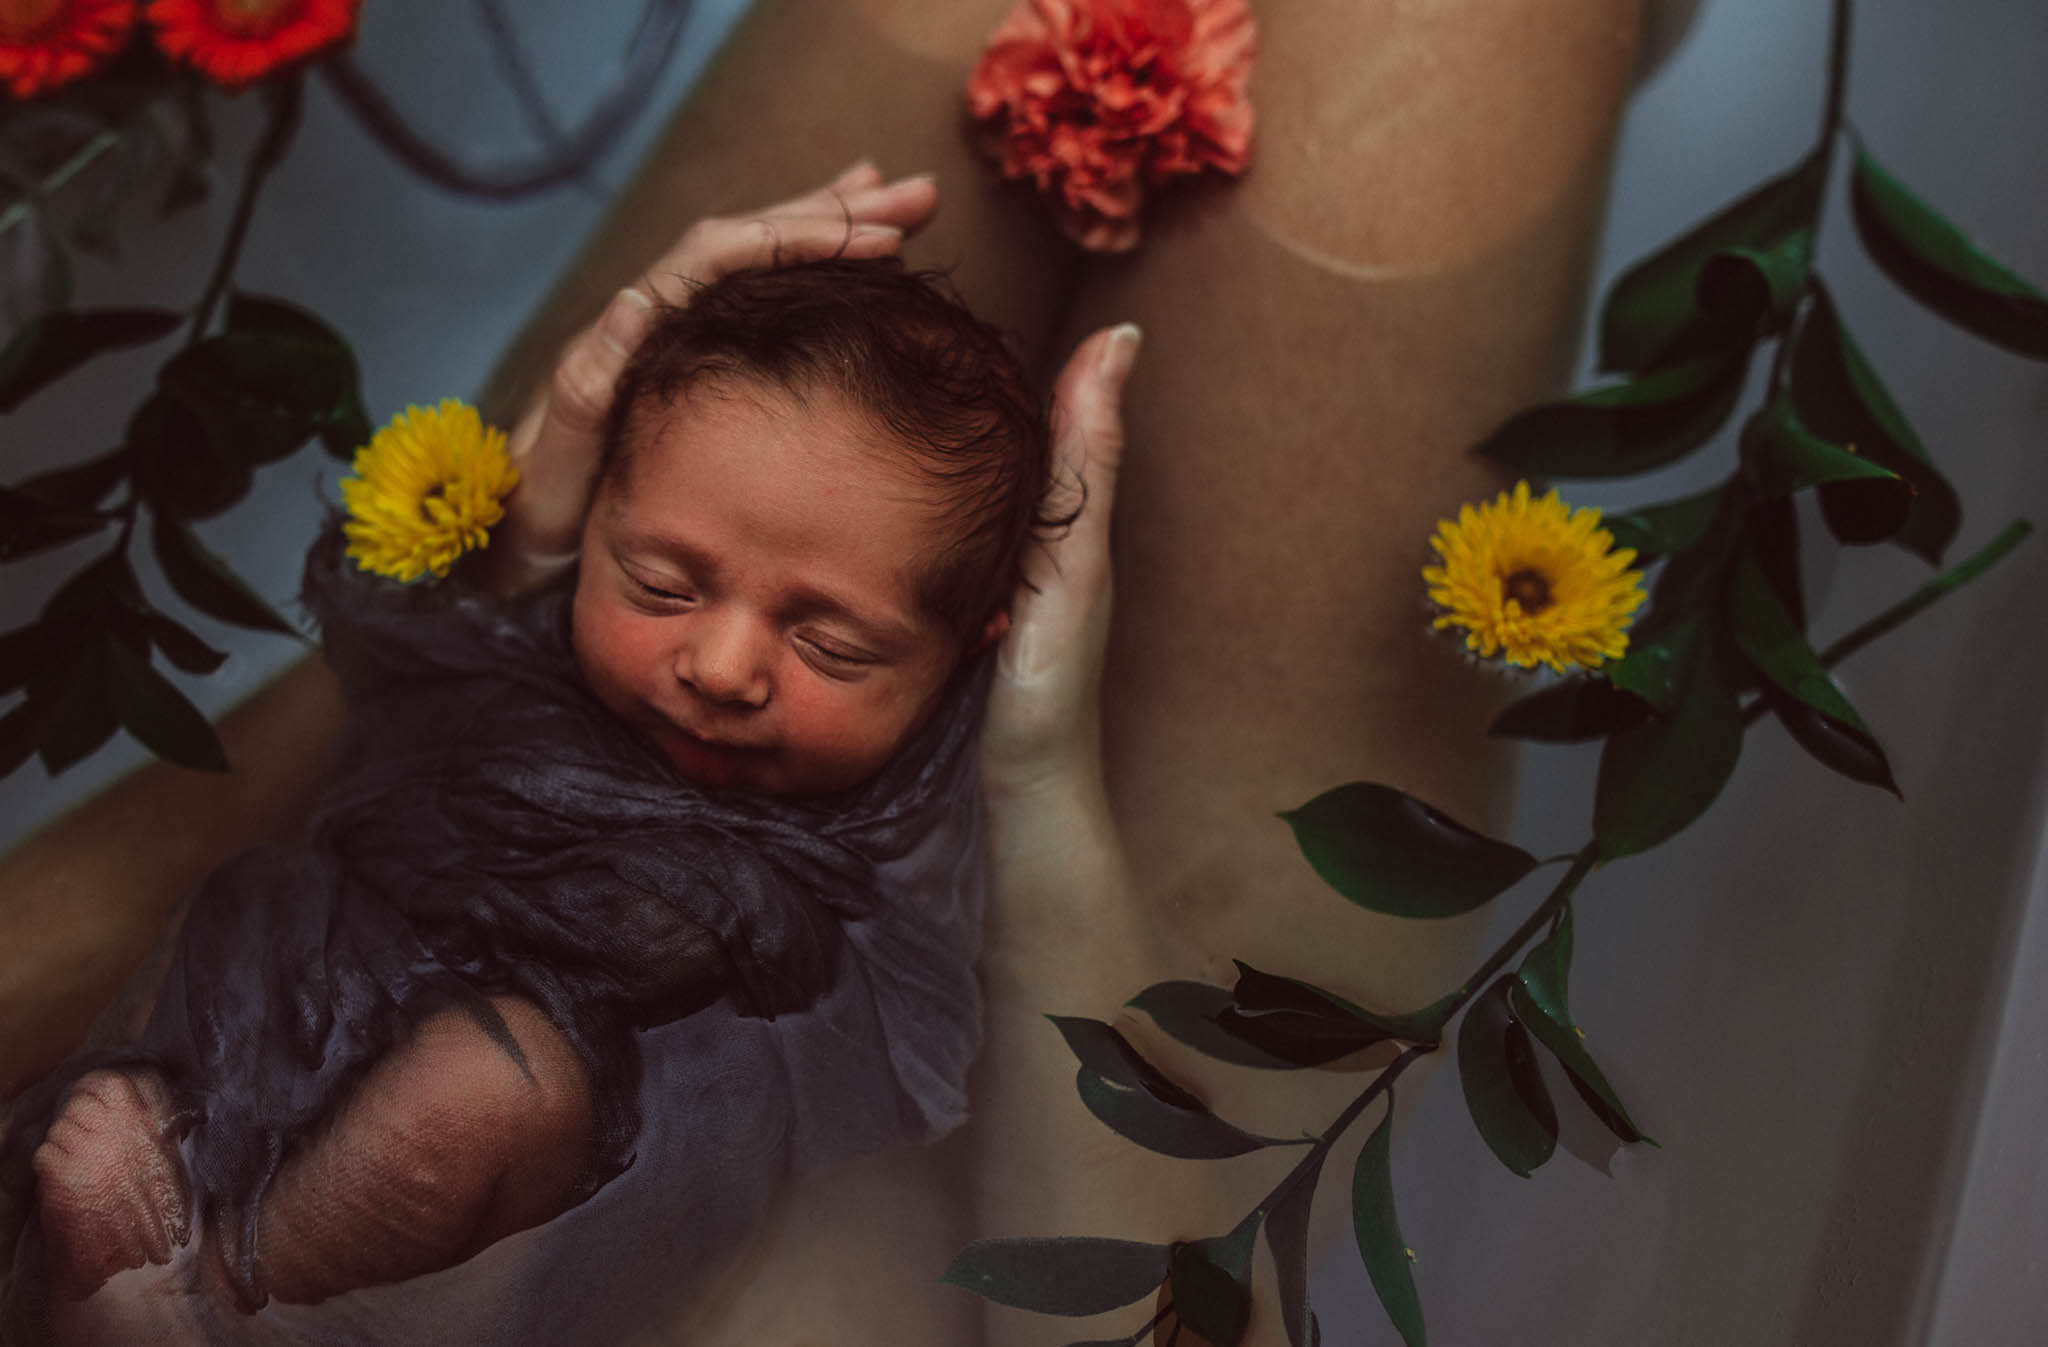 Exeter newborn photographer